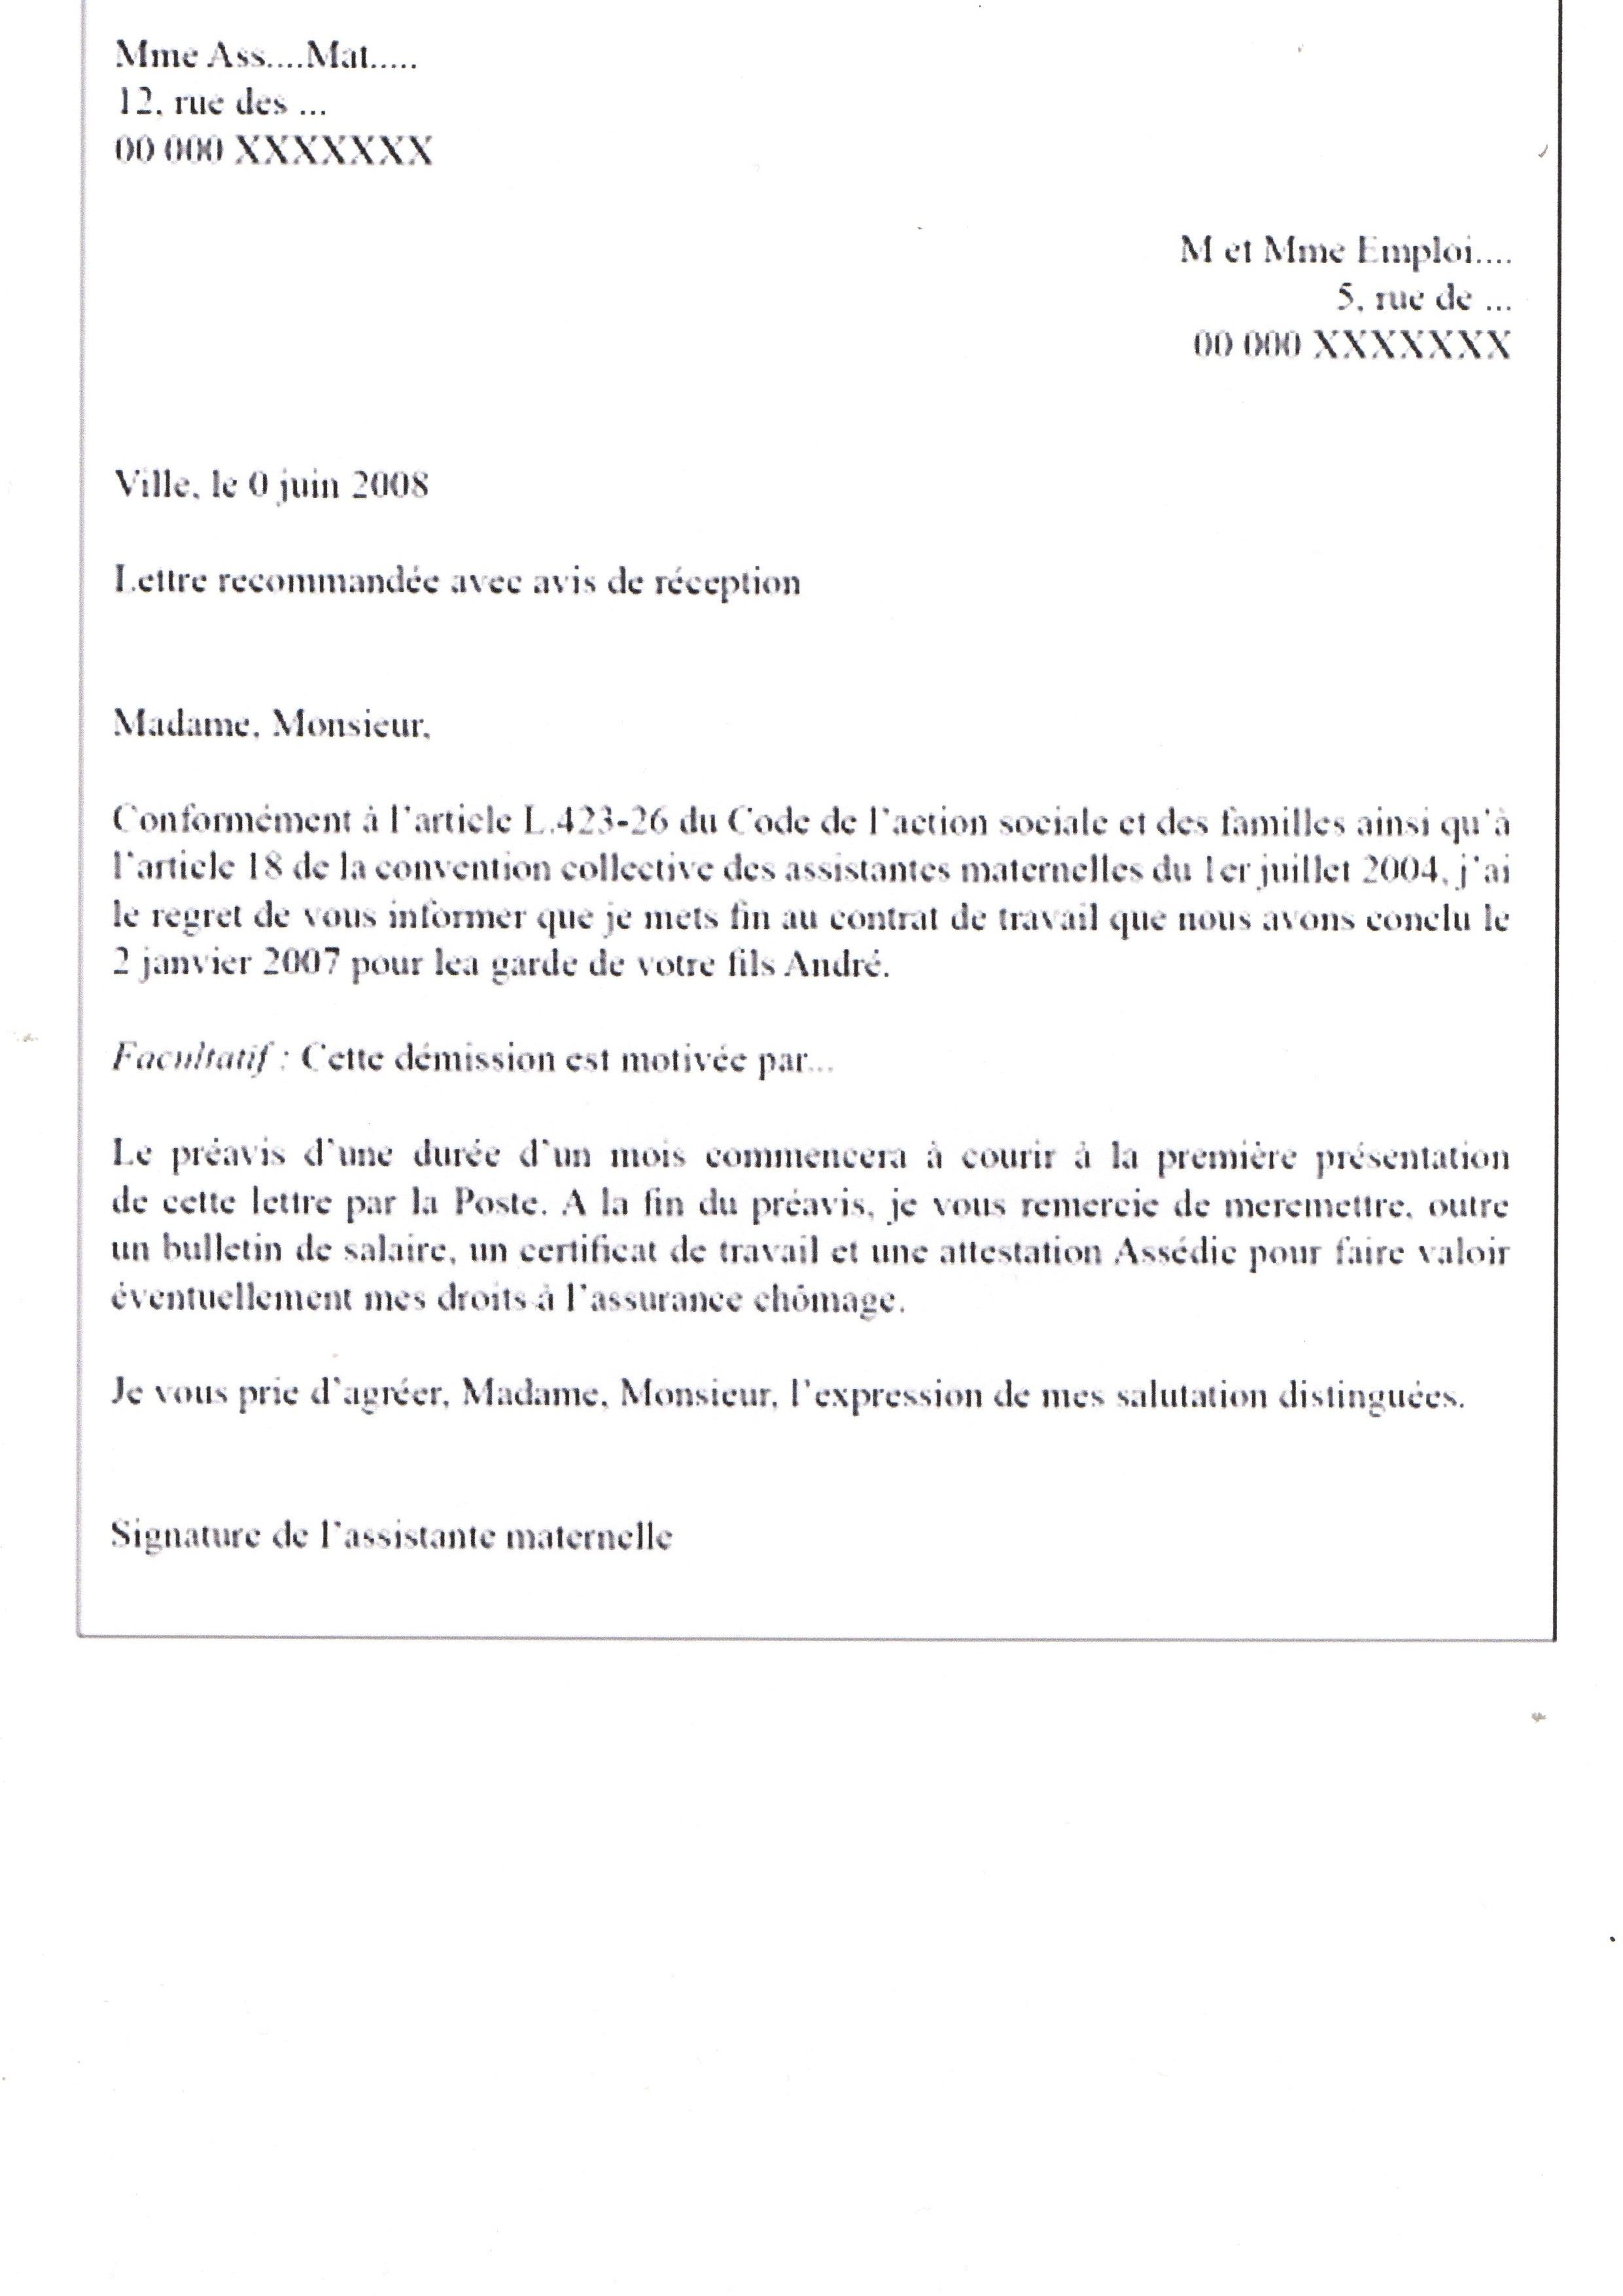 mod u00e8le de lettre d u00e9mission de l u0026 39 assistante maternelle